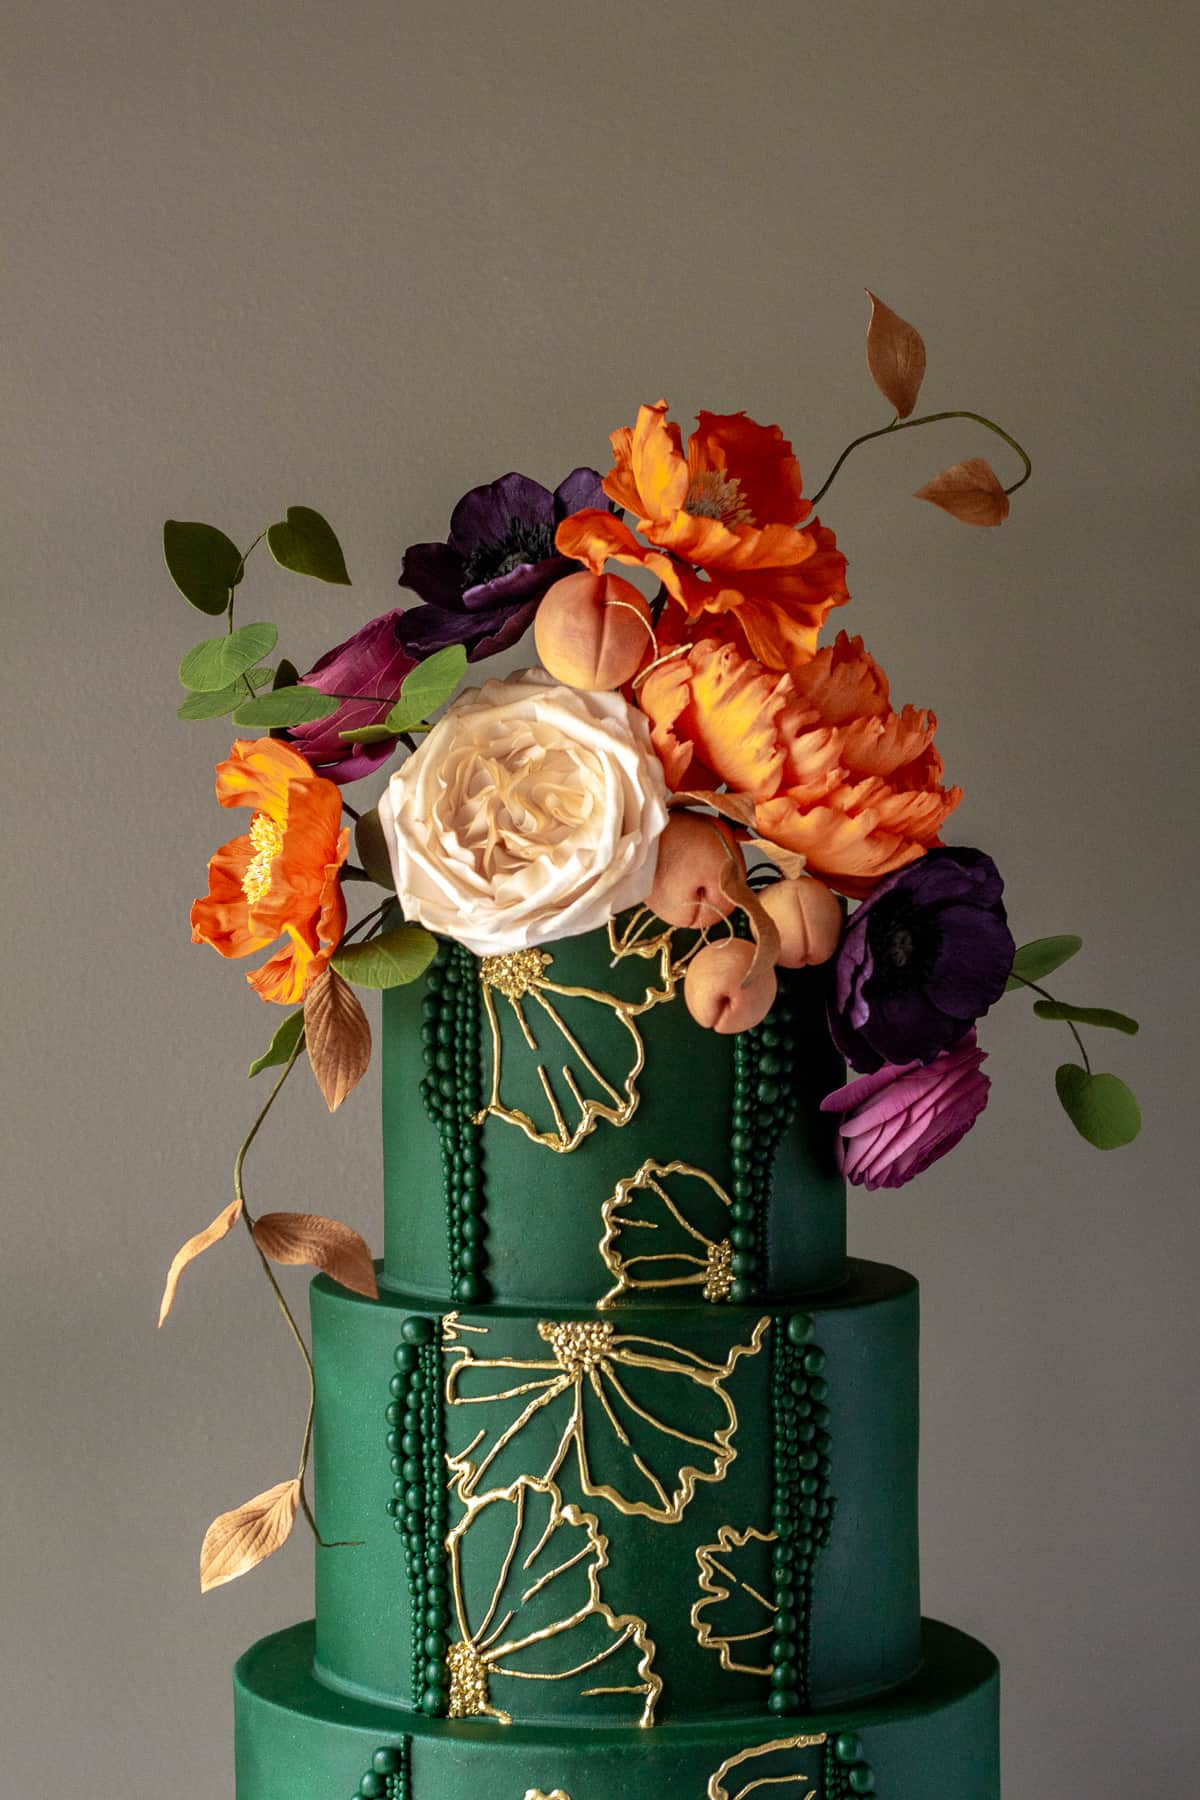 Easy Floral Piped Royal Icing Cake Tutorial